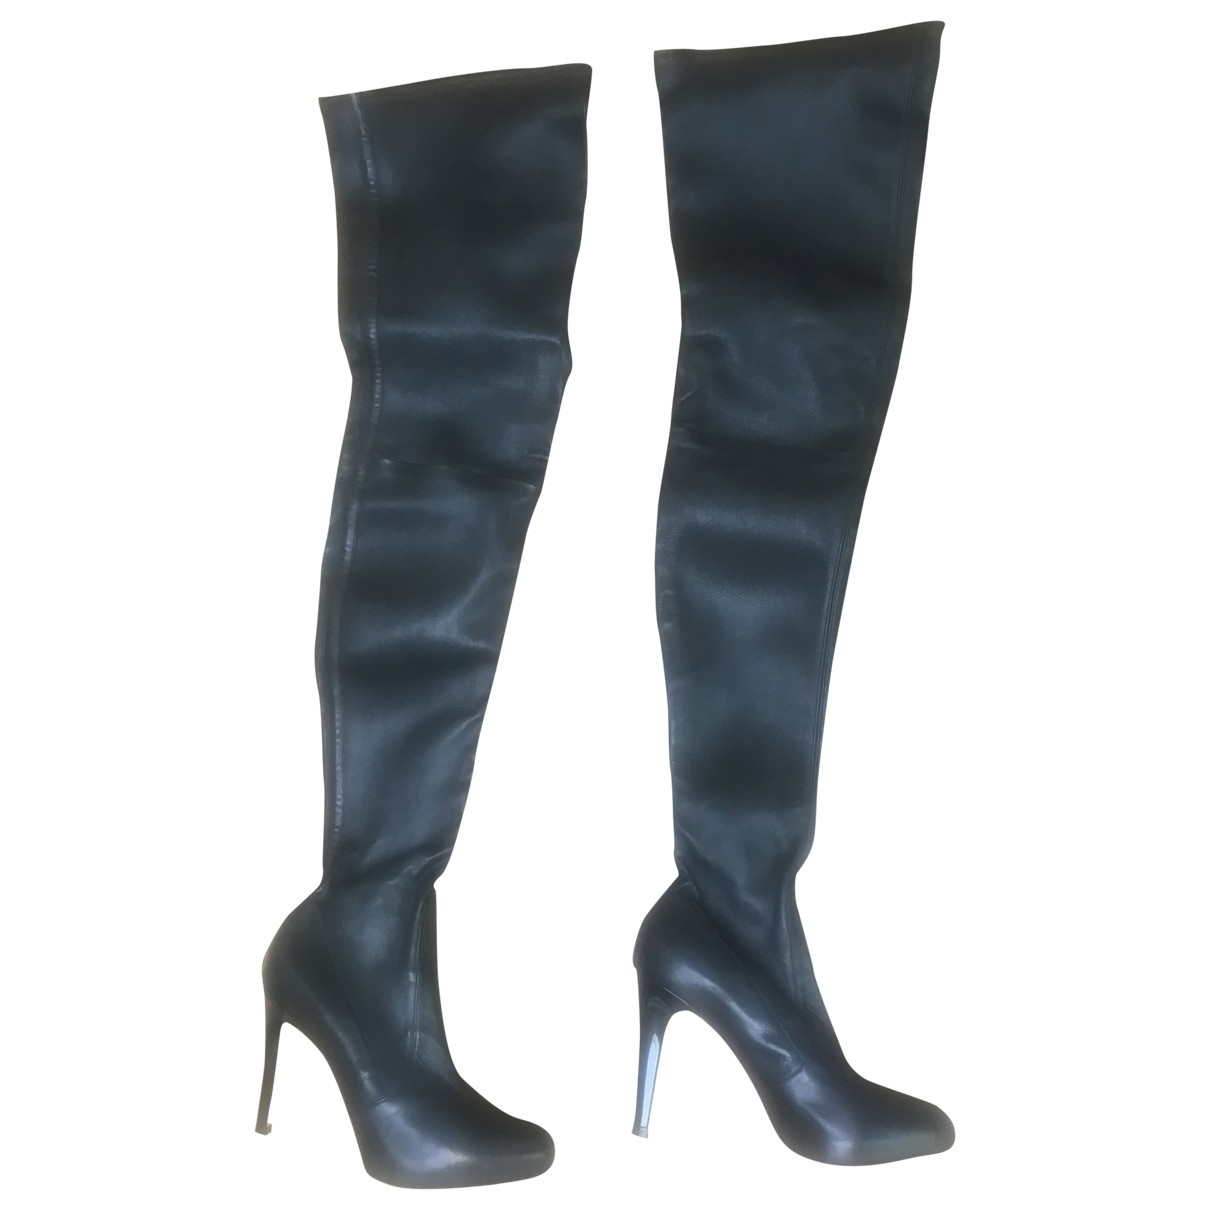 Gianvito Rossi \N Black Leather Boots for Women 38 EU